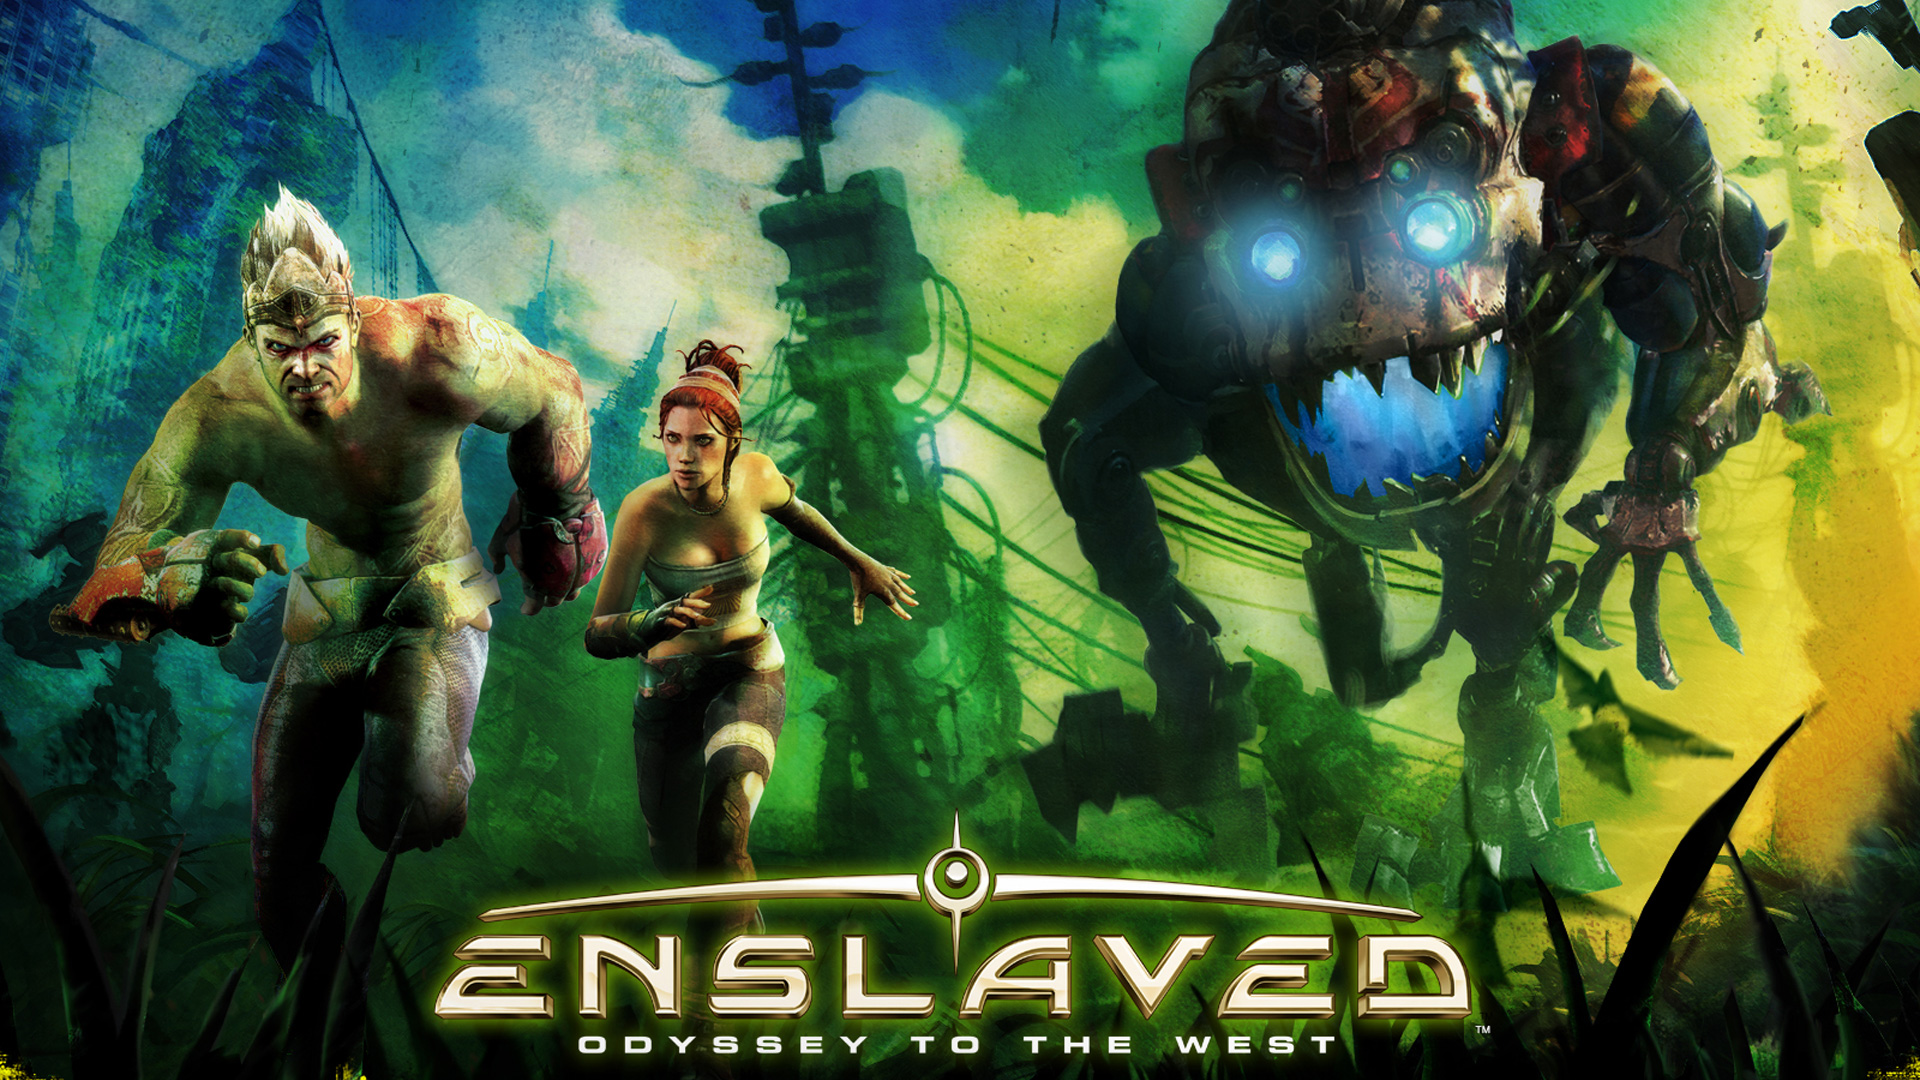 Enslaved: Odyssey to the West Wallpaper in 1920x1080